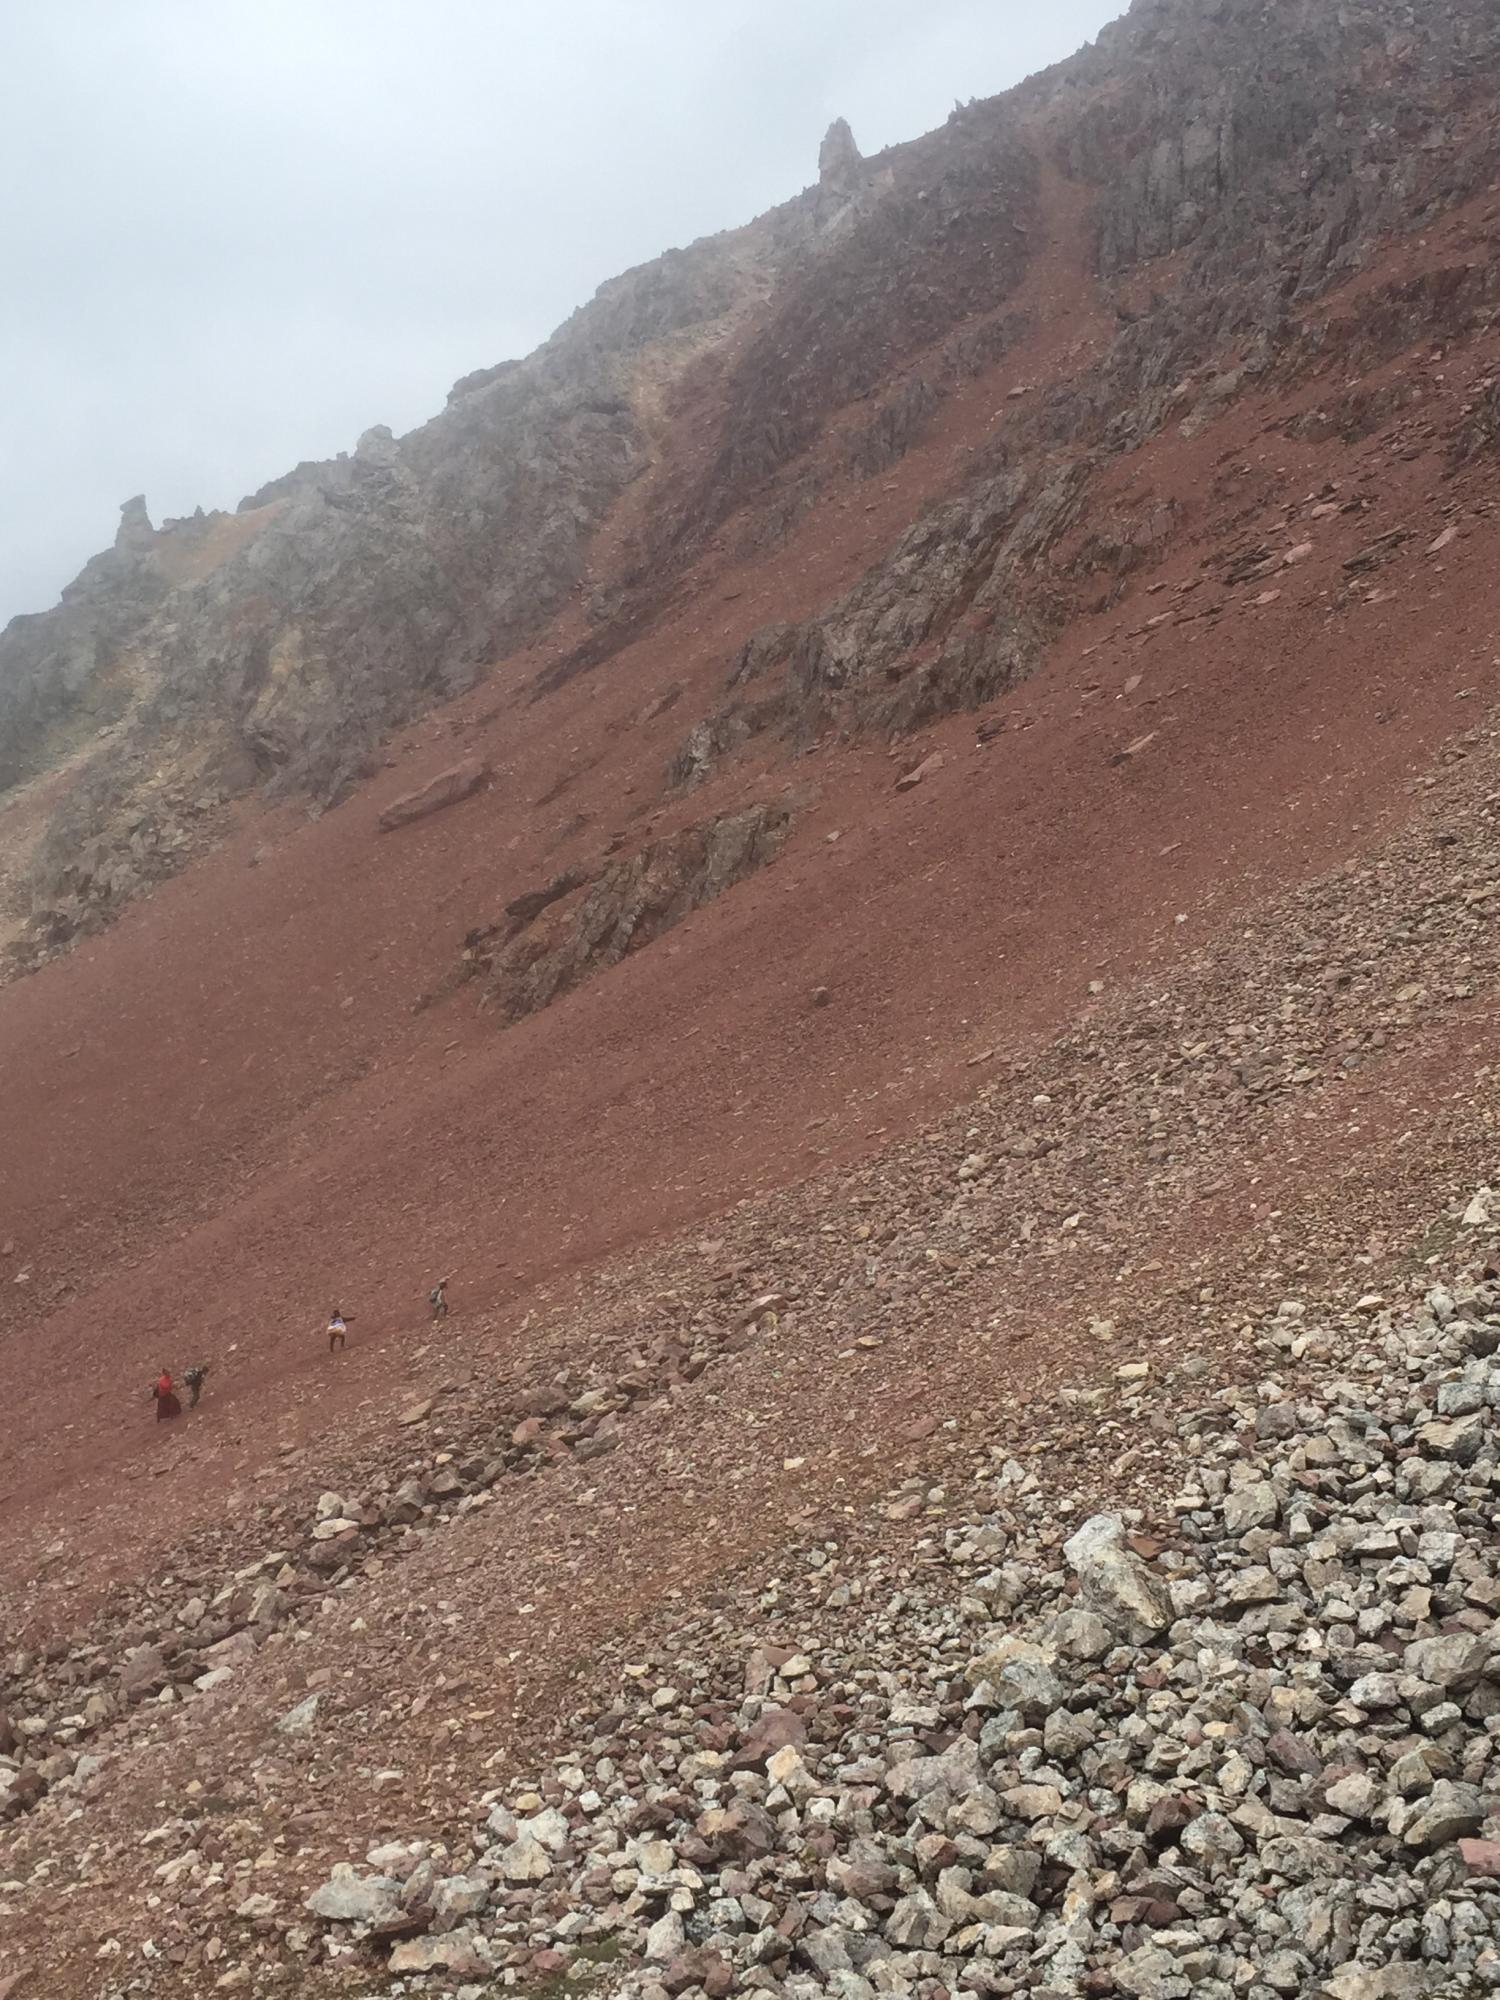 Steep scree on the way up to the last, and highest, pass, Shola.